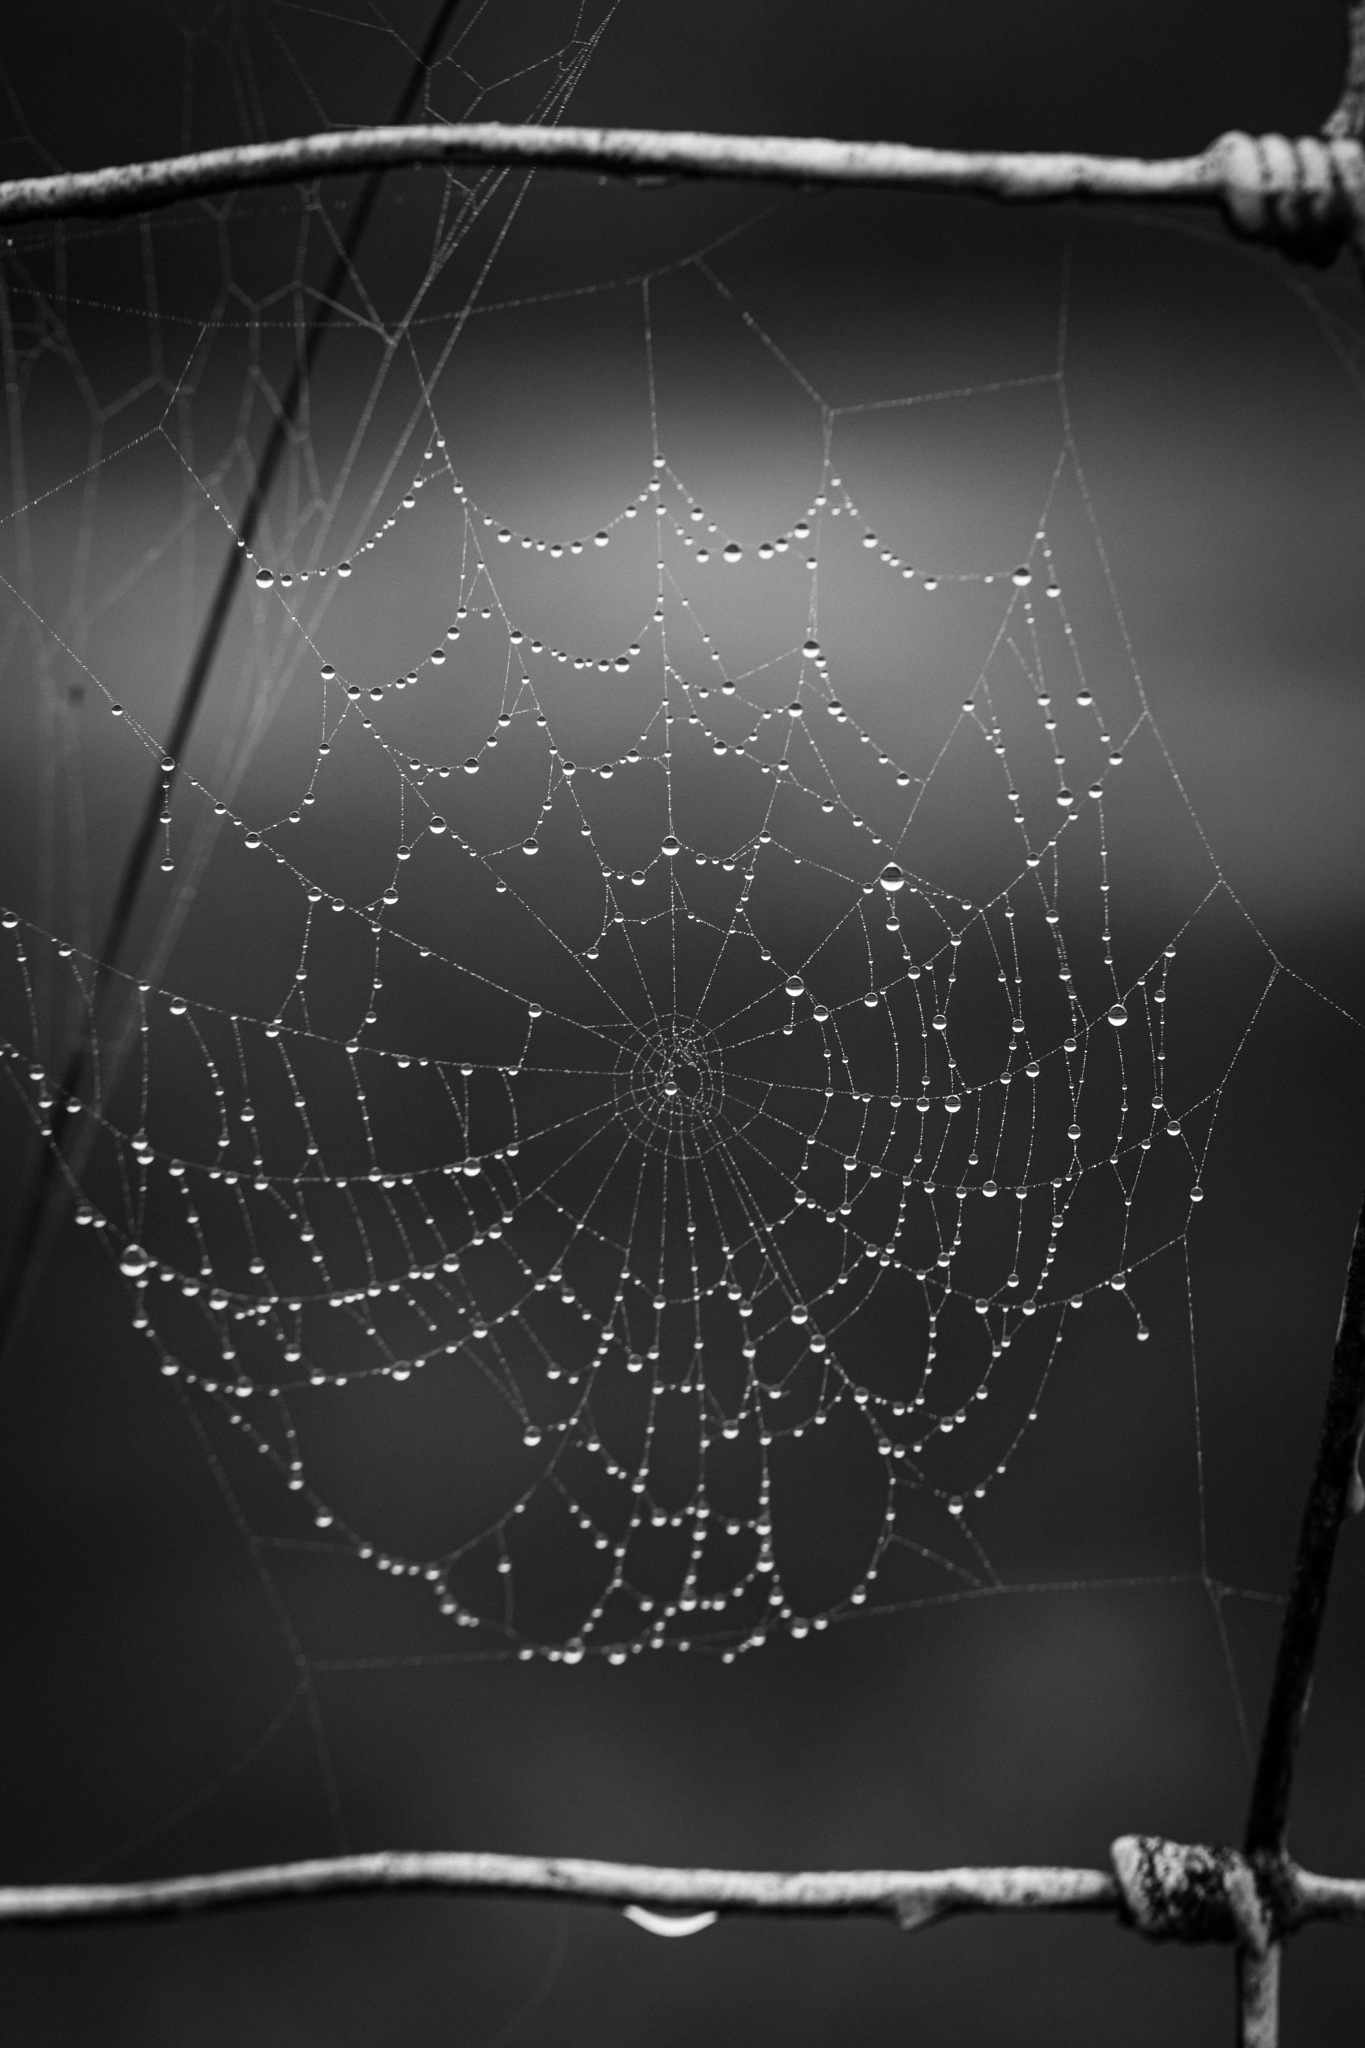 The web in the morning dew by Legenderriere